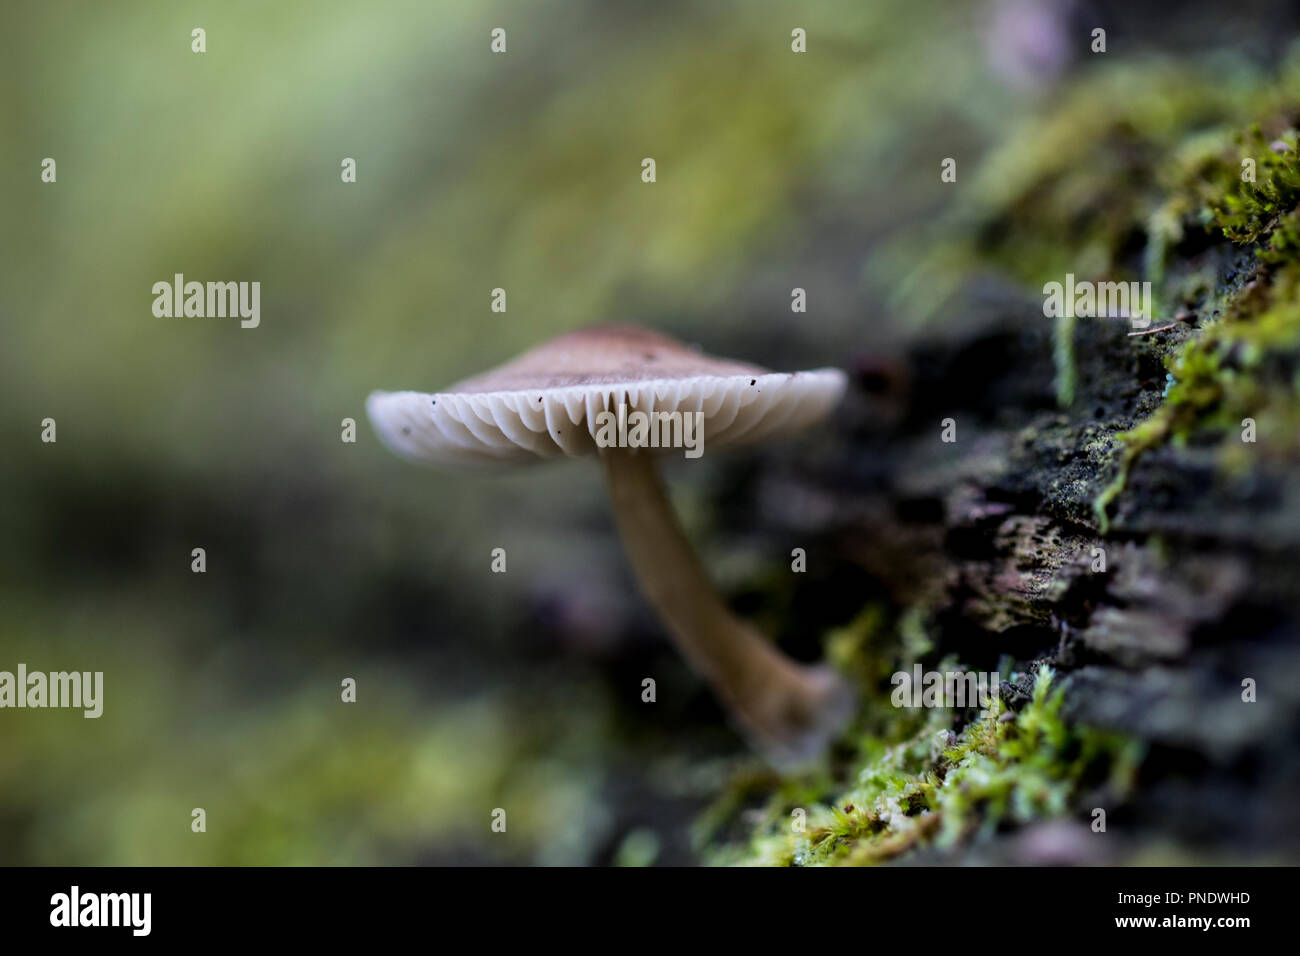 Single mushroom sprouting out of wood with green moss around it. Stem and cap of a small fruiting fungus. Microorganisms that help decomposition in na - Stock Image